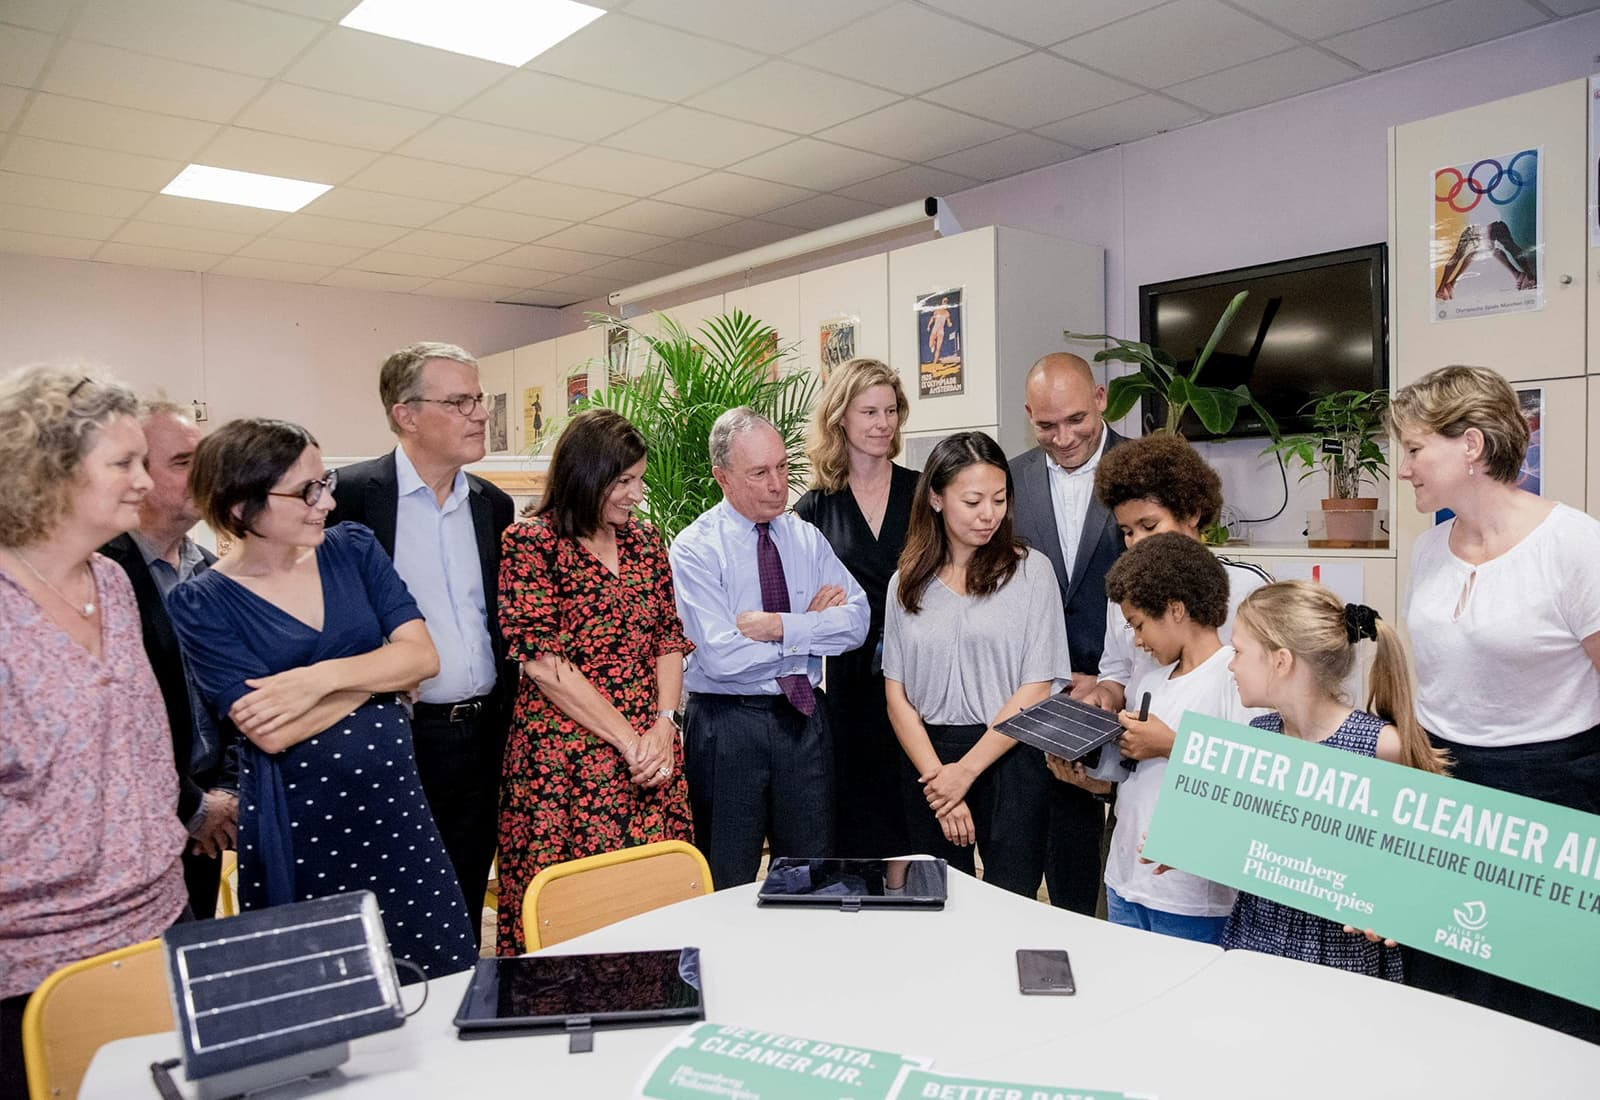 Mike Bloomberg joins Paris Mayor Anne Hidalgo to unveil a partnership between Bloomberg Philanthropies and the city of Paris to improve air quality and better understand pollution patterns throughout the city.